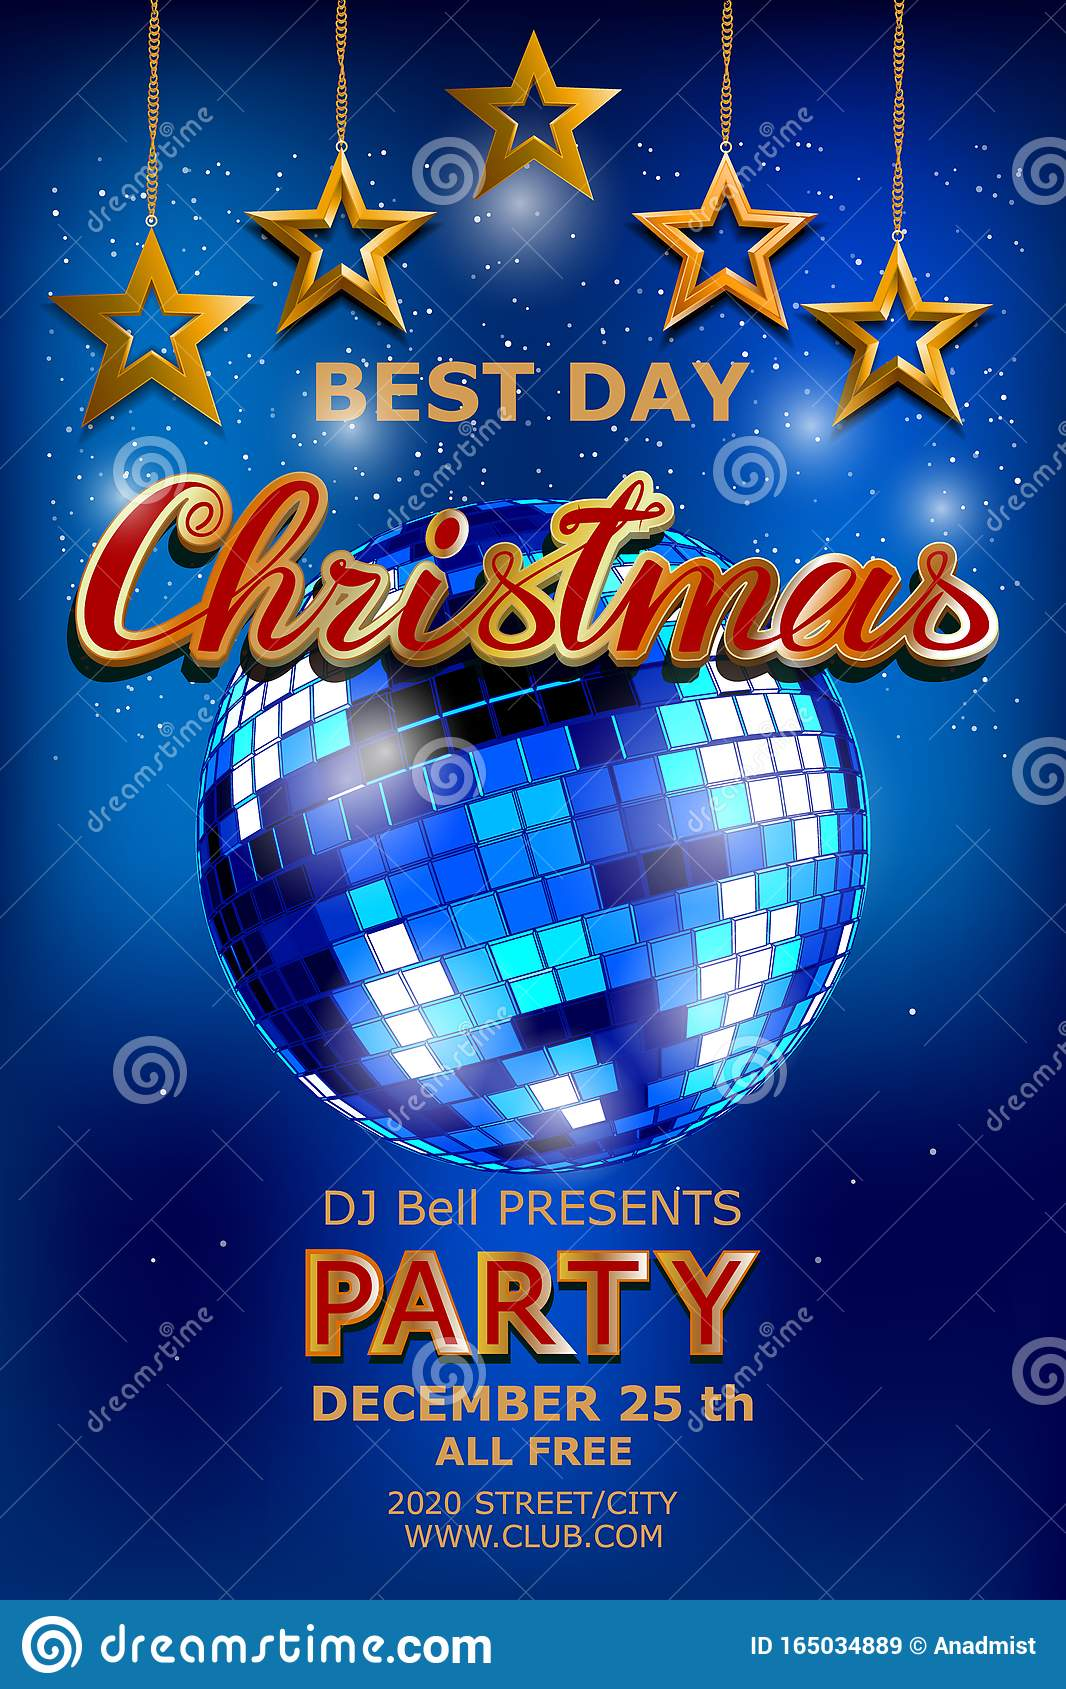 Christmas Disco Poster Stock Illustrations 3 767 Christmas Disco Poster Stock Illustrations Vectors Clipart Dreamstime